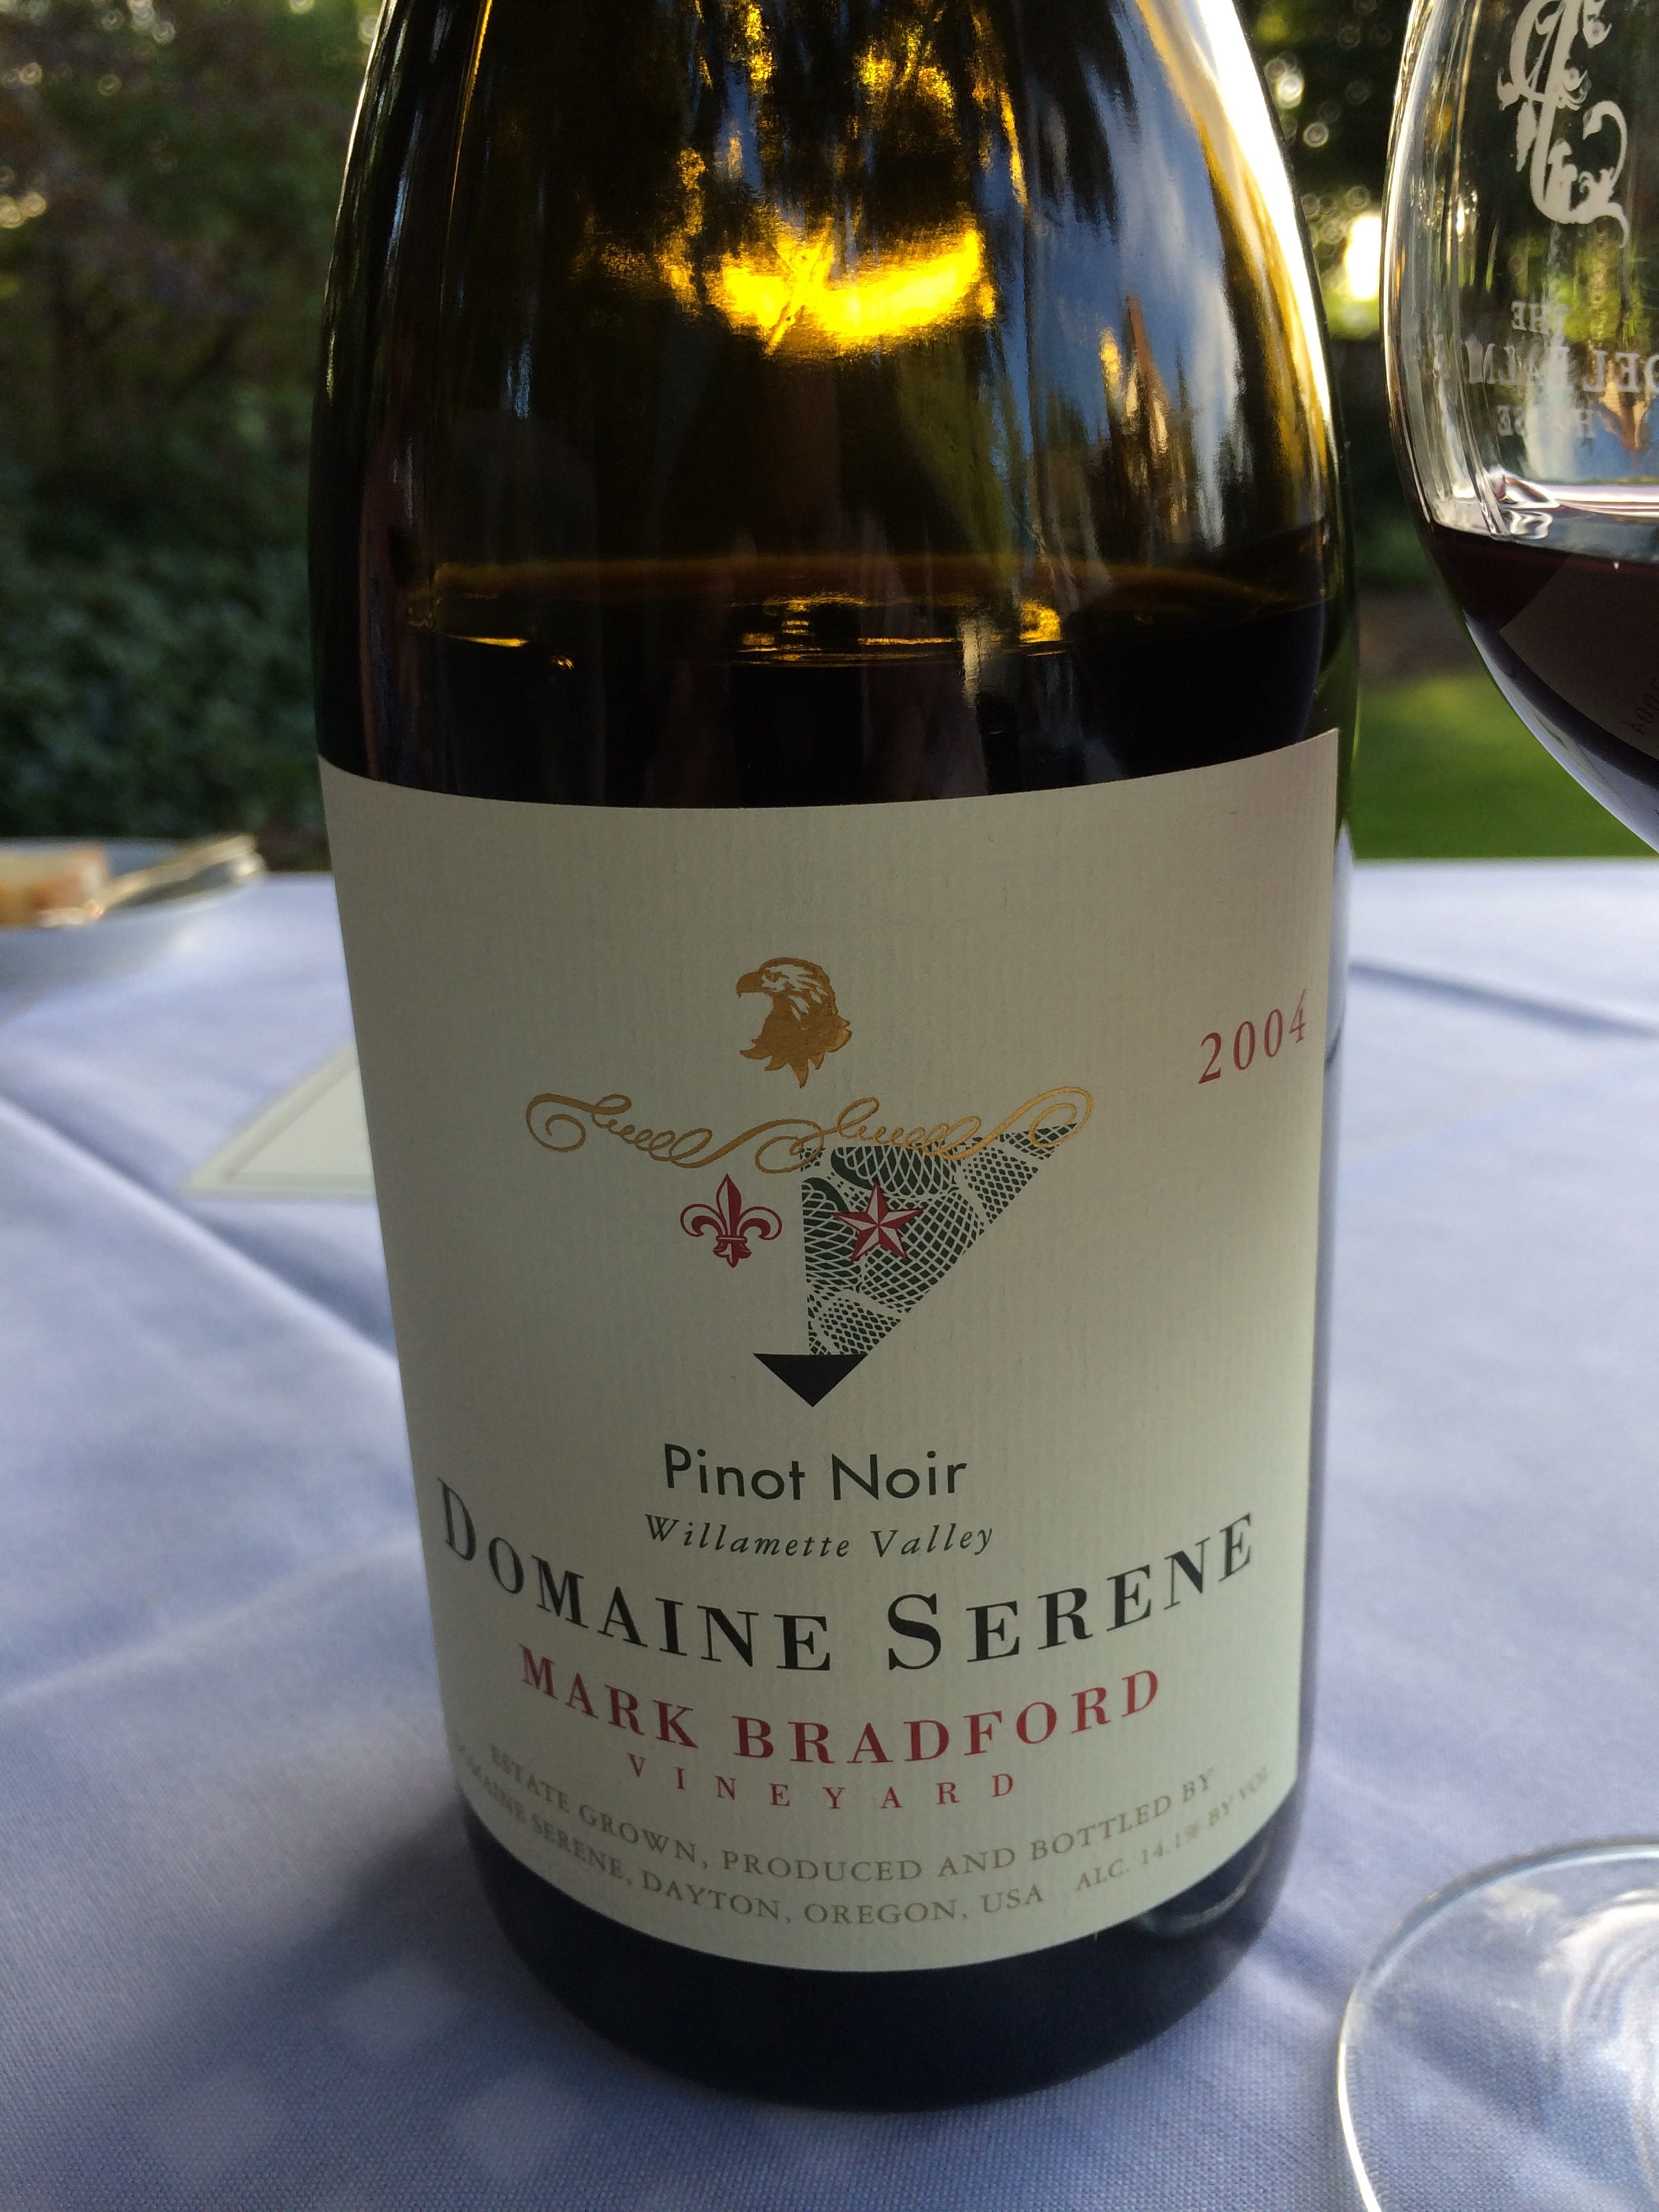 The Mark Bradford 2004 was drinking great at over 10 years.